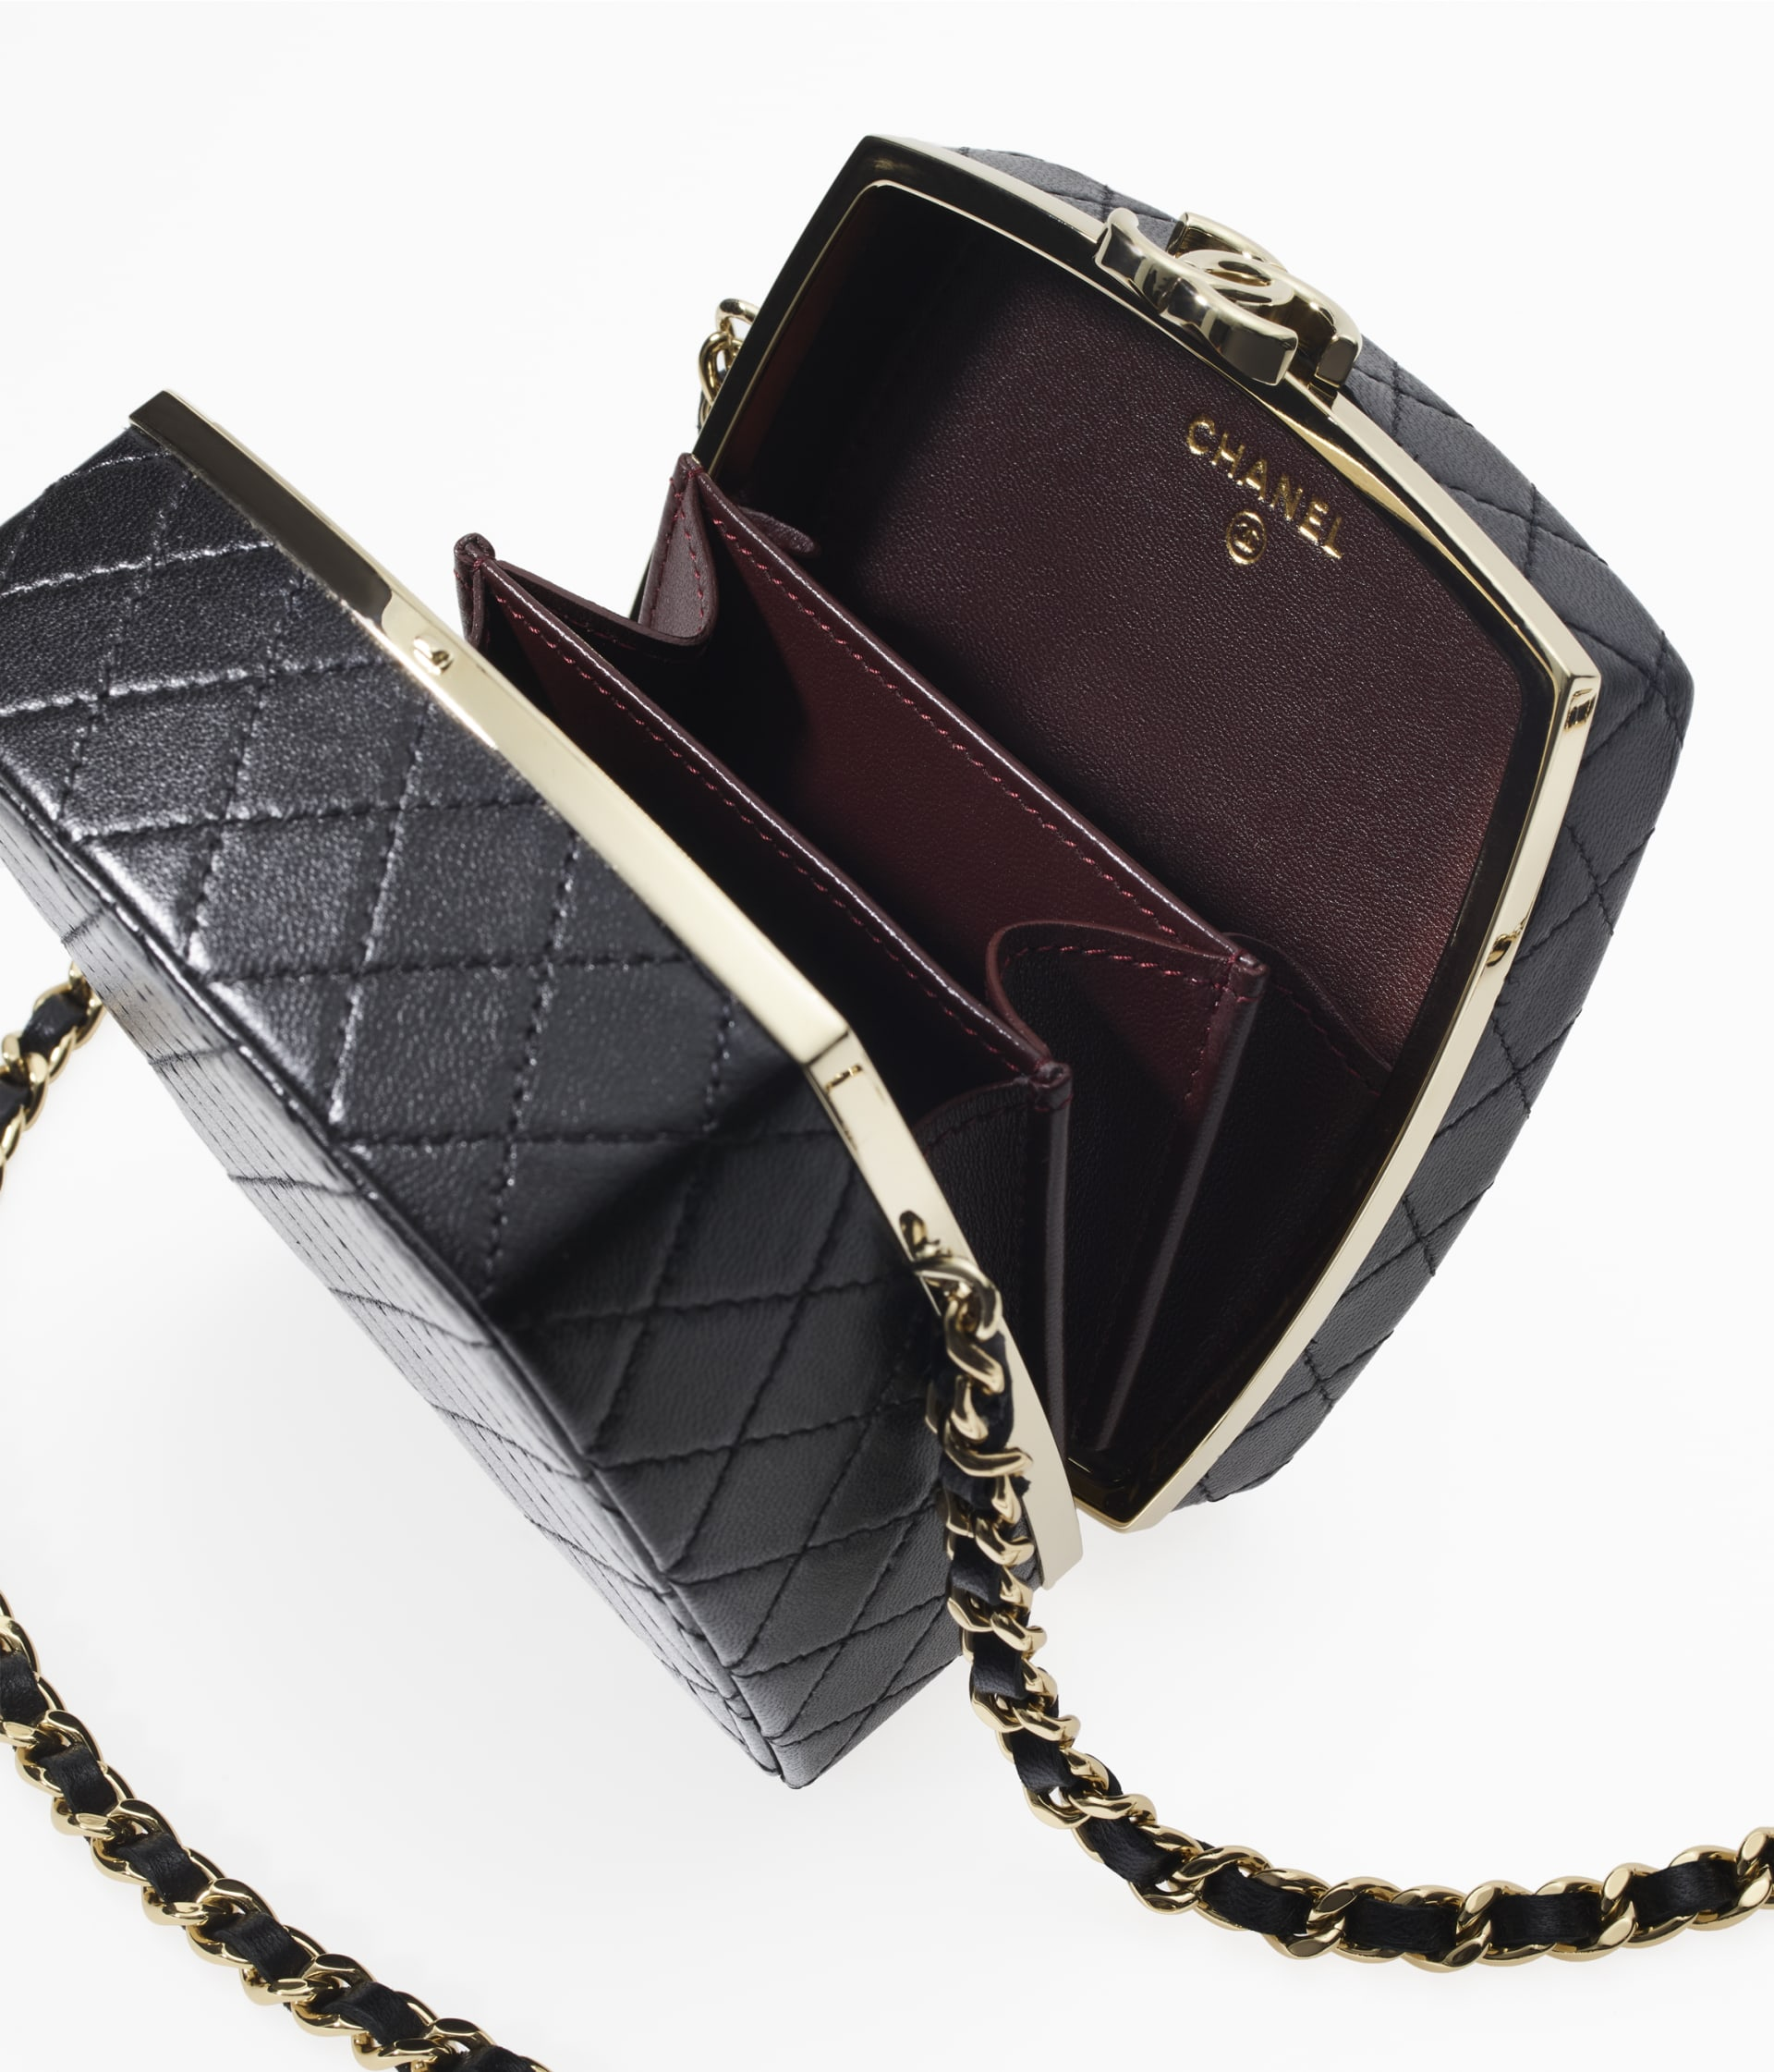 image 2 - Clutch with Chain - Lambskin & Gold-Tone Metal - Black